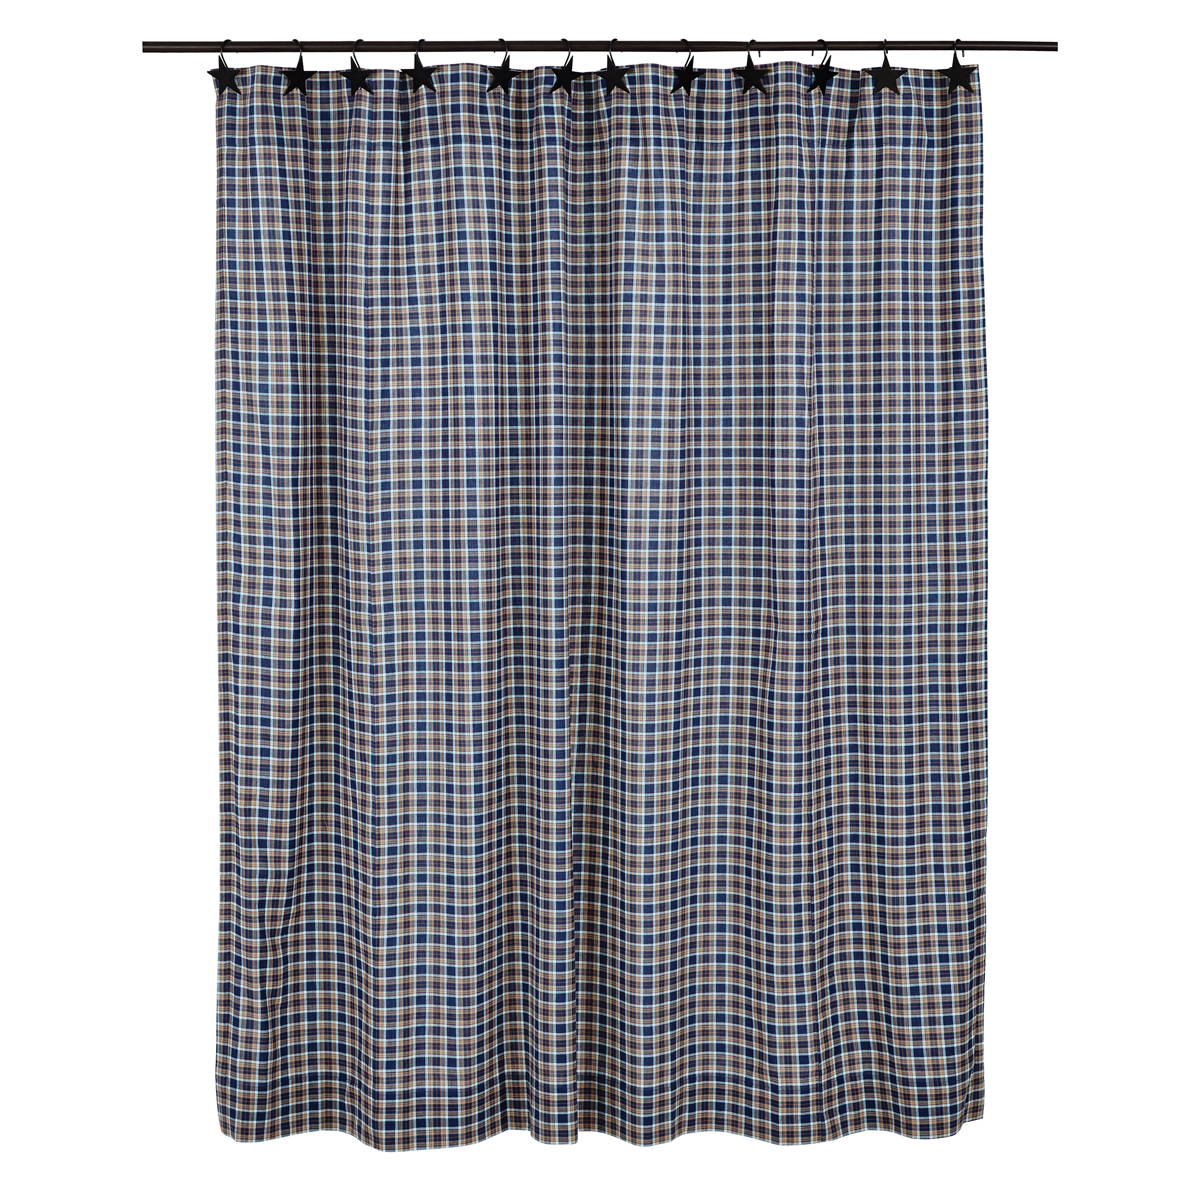 Country bathroom shower curtains - Jenson Country Plaid Shower Curtain